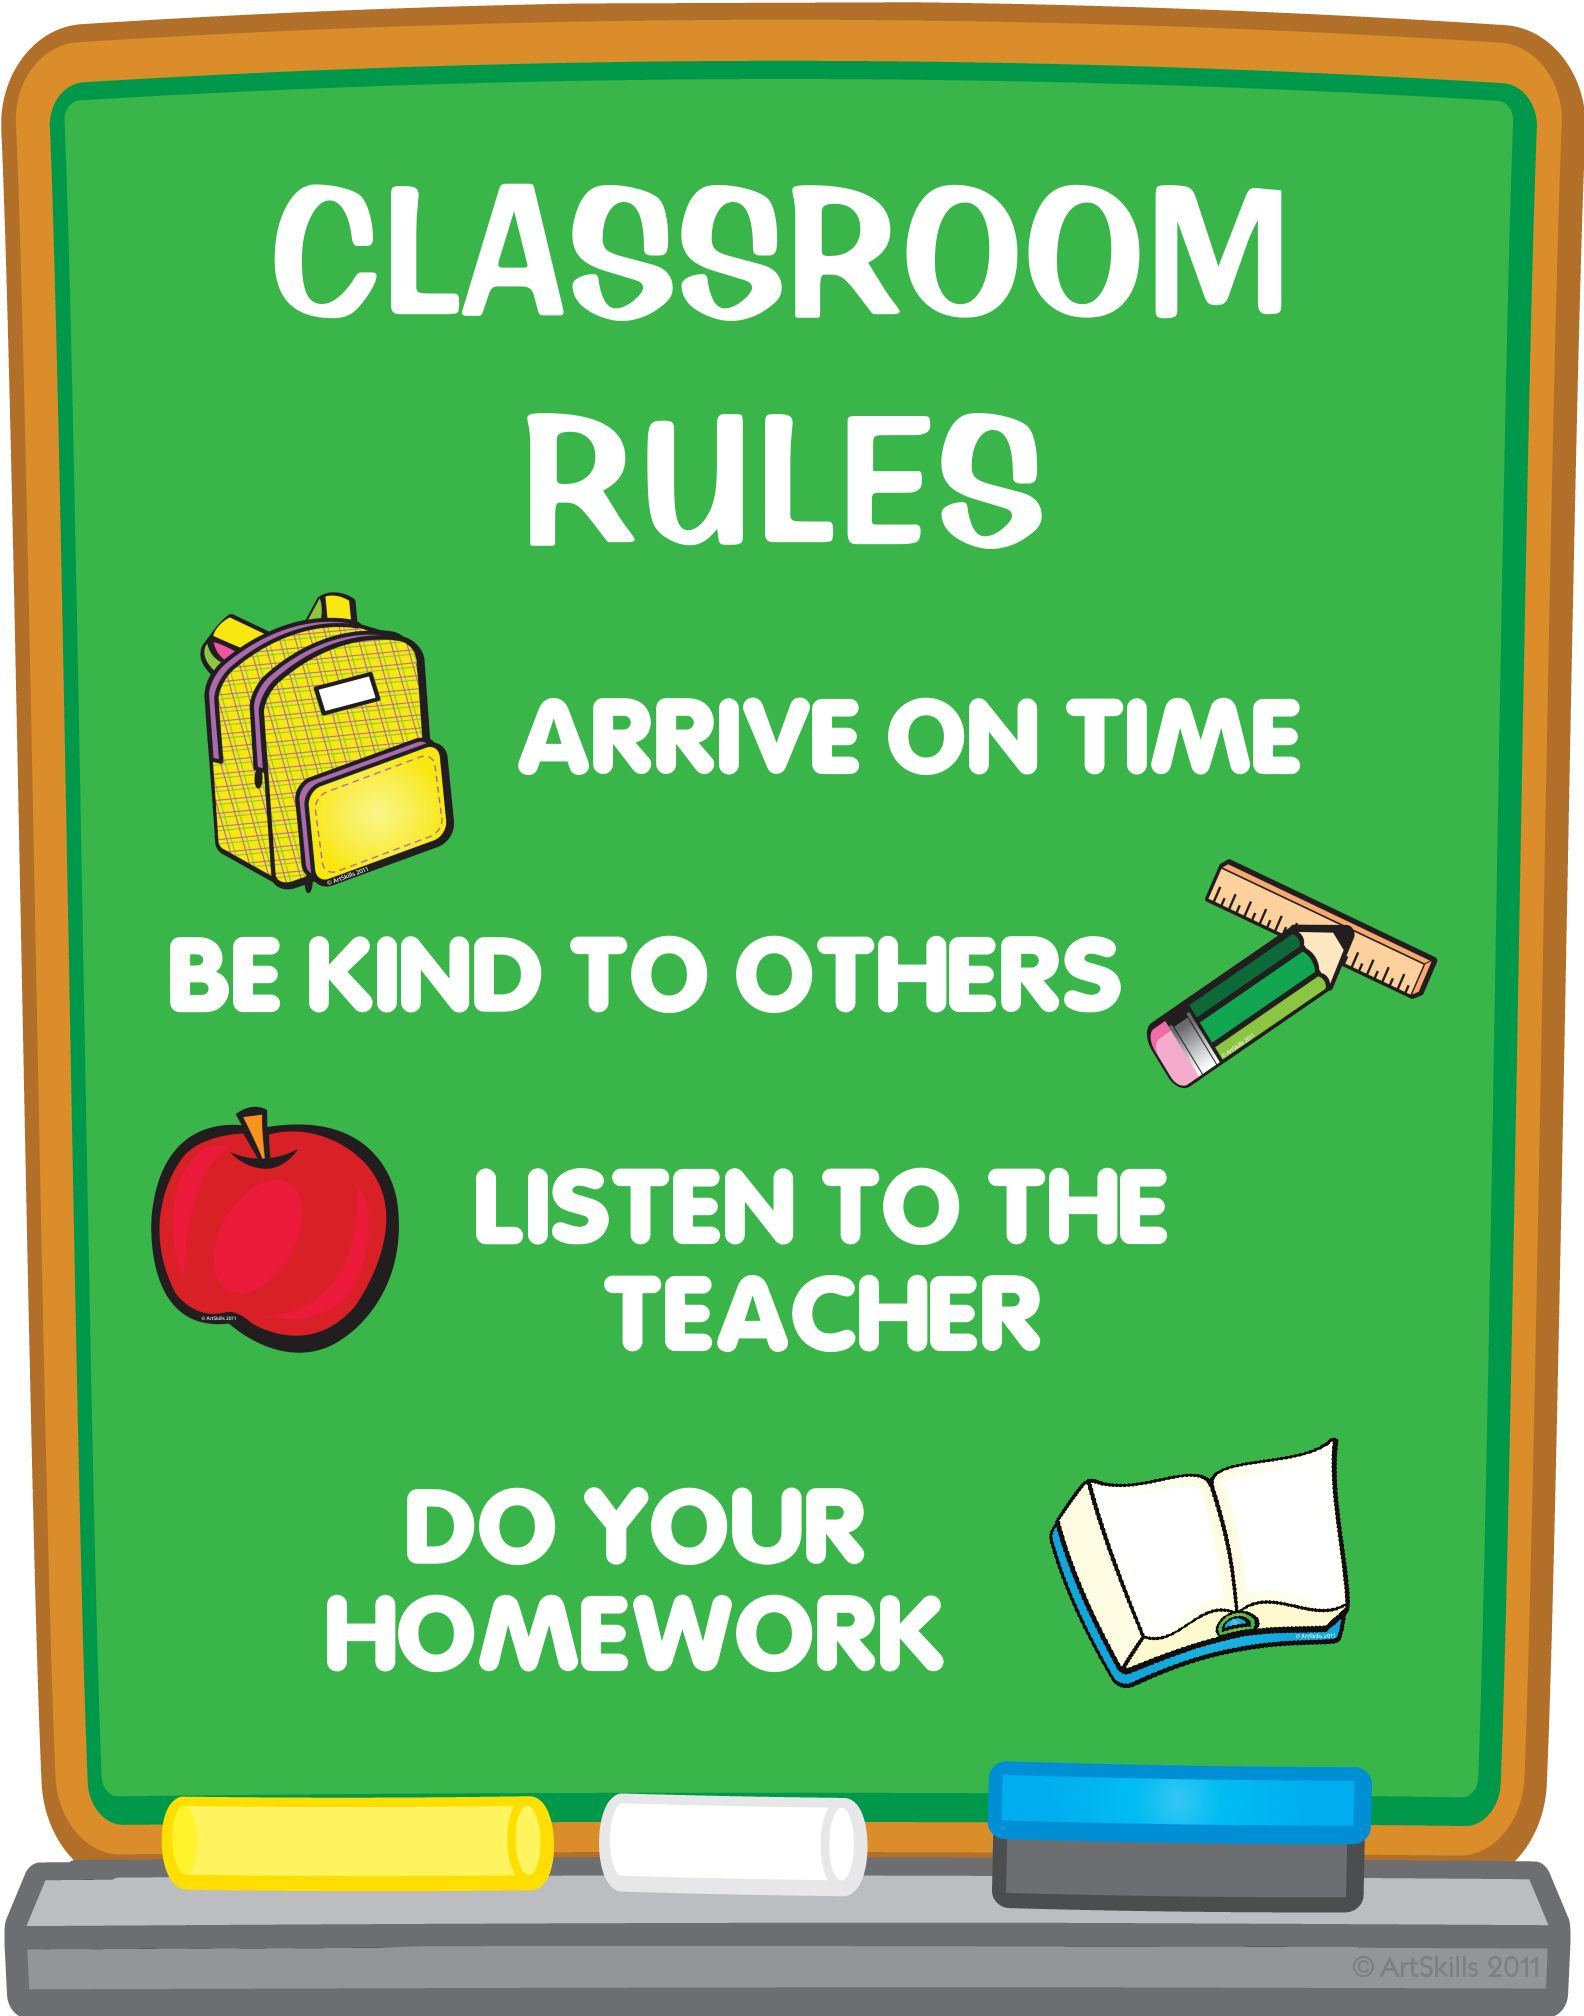 Classroom Poster Ideas ~ Create a classroom rules poster ideas